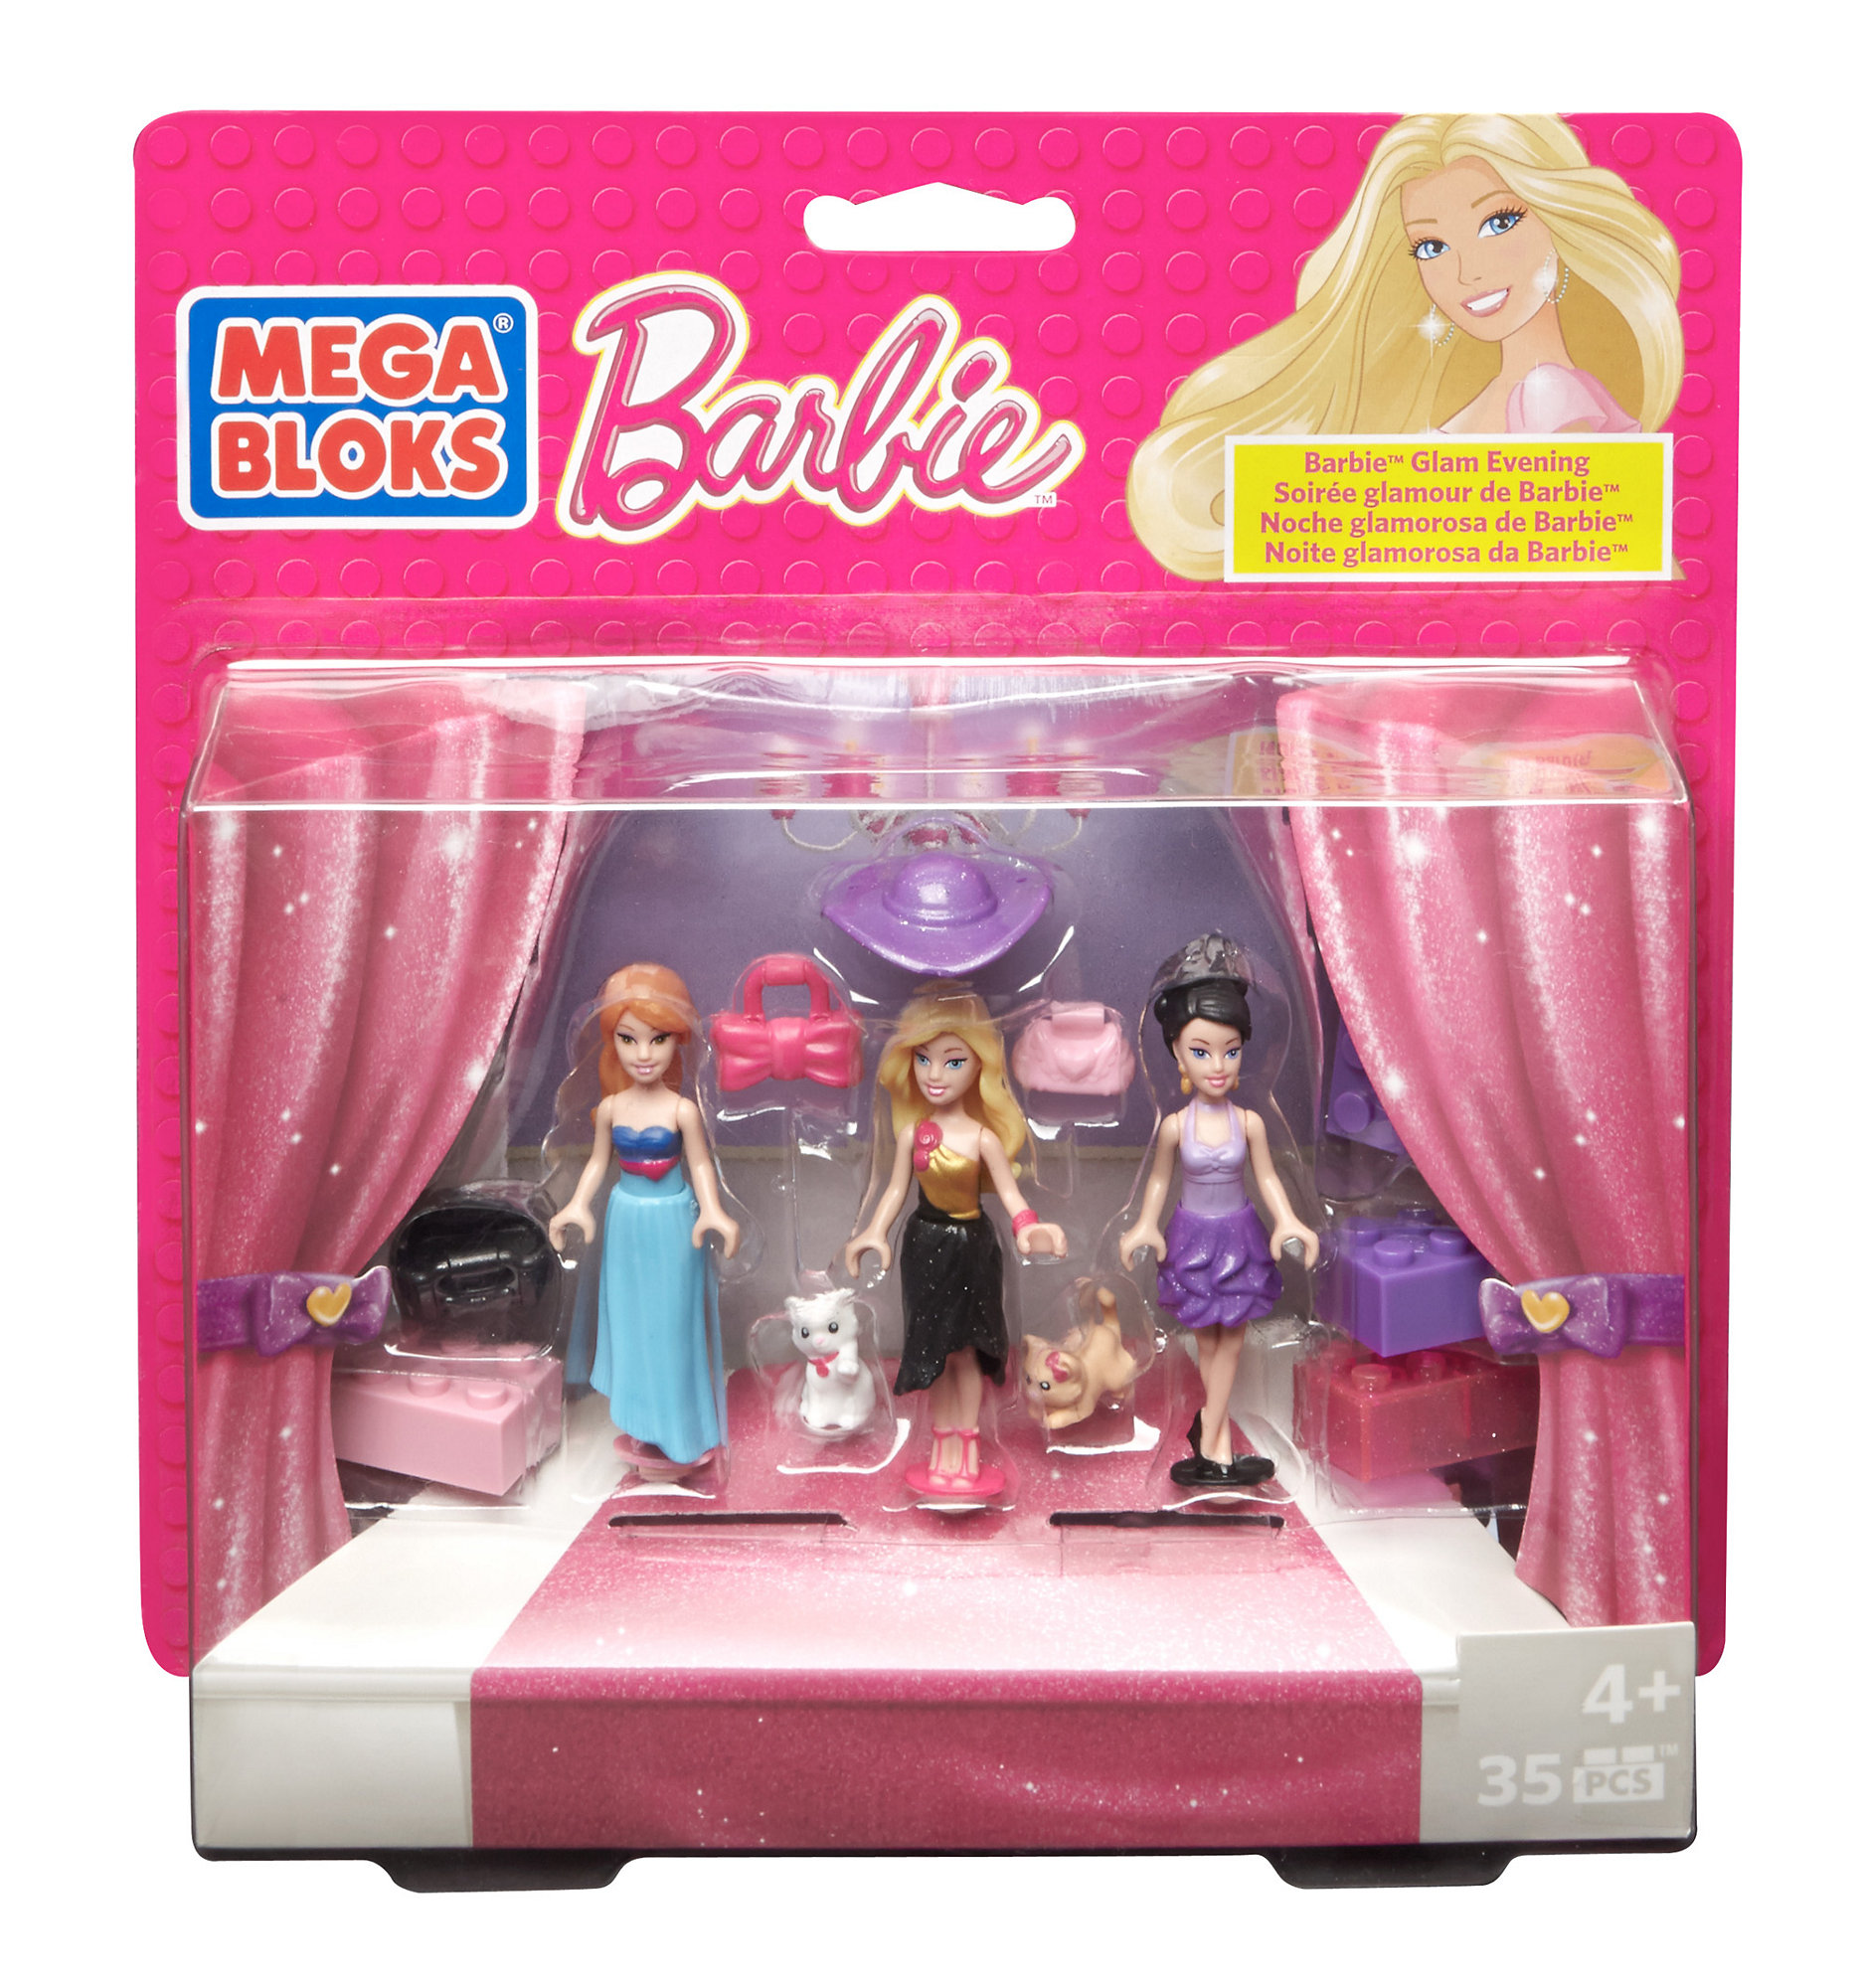 Mega Bloks Barbie Glam Evening